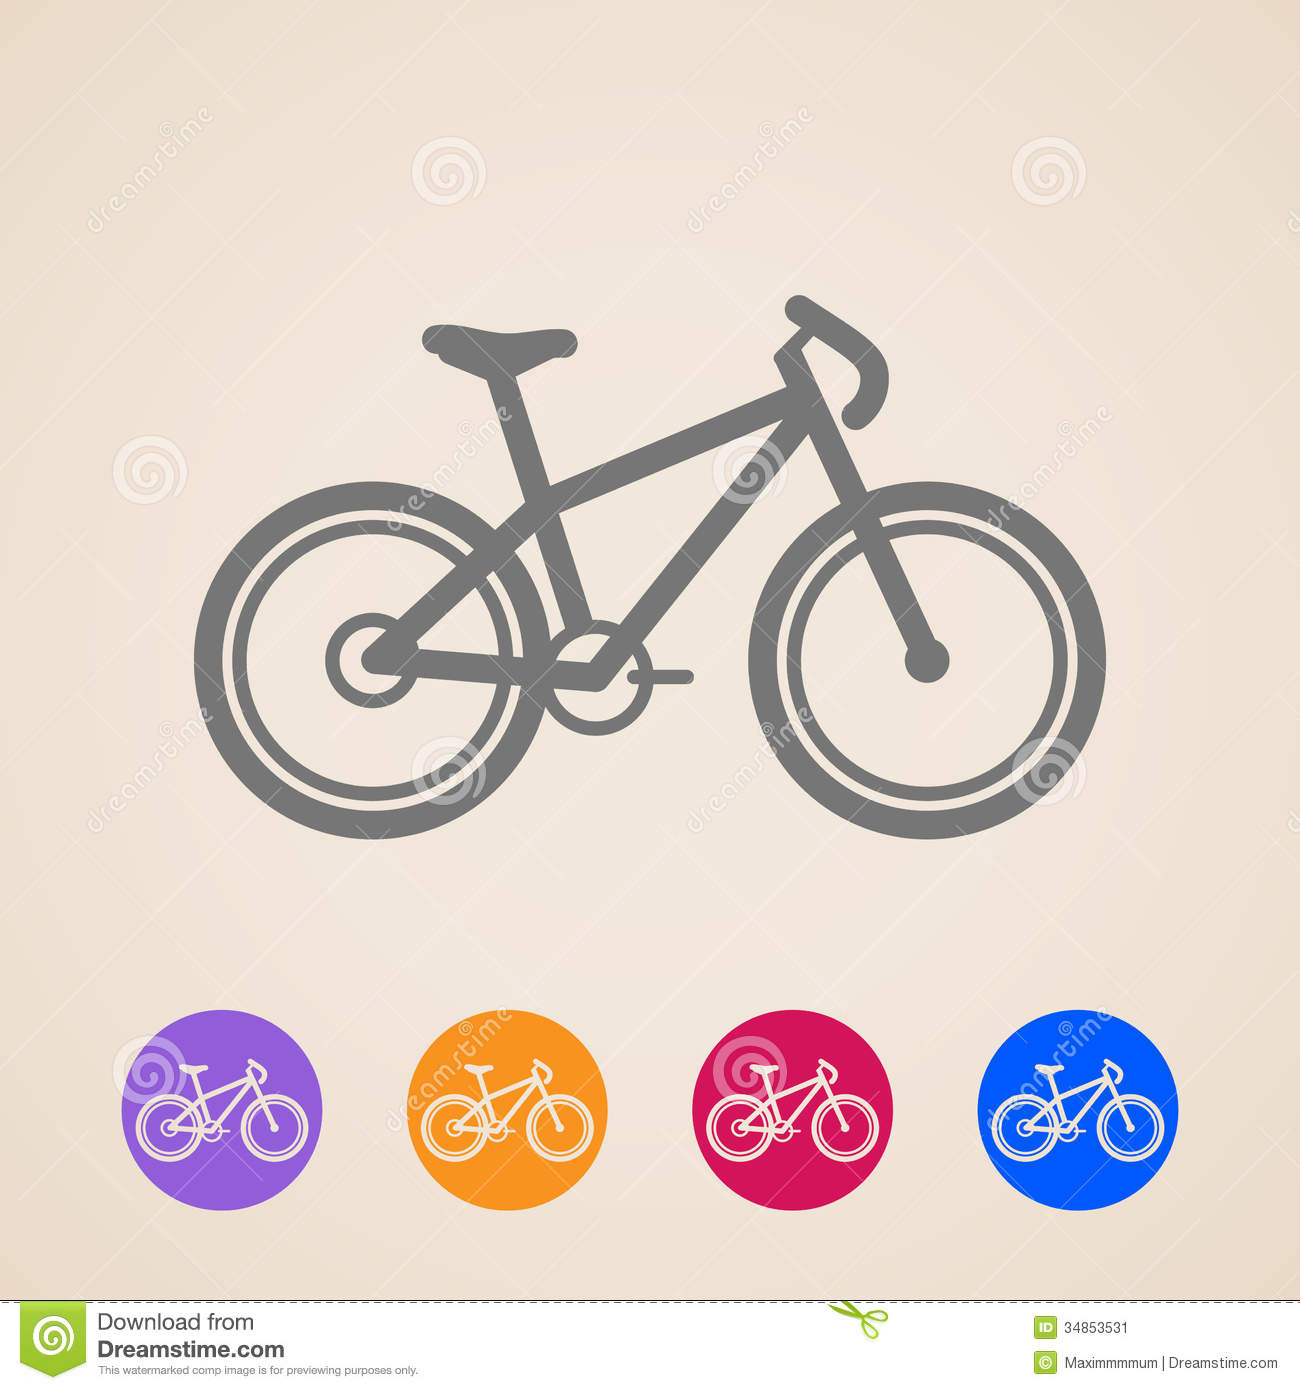 Simple bicycle illustration - photo#21